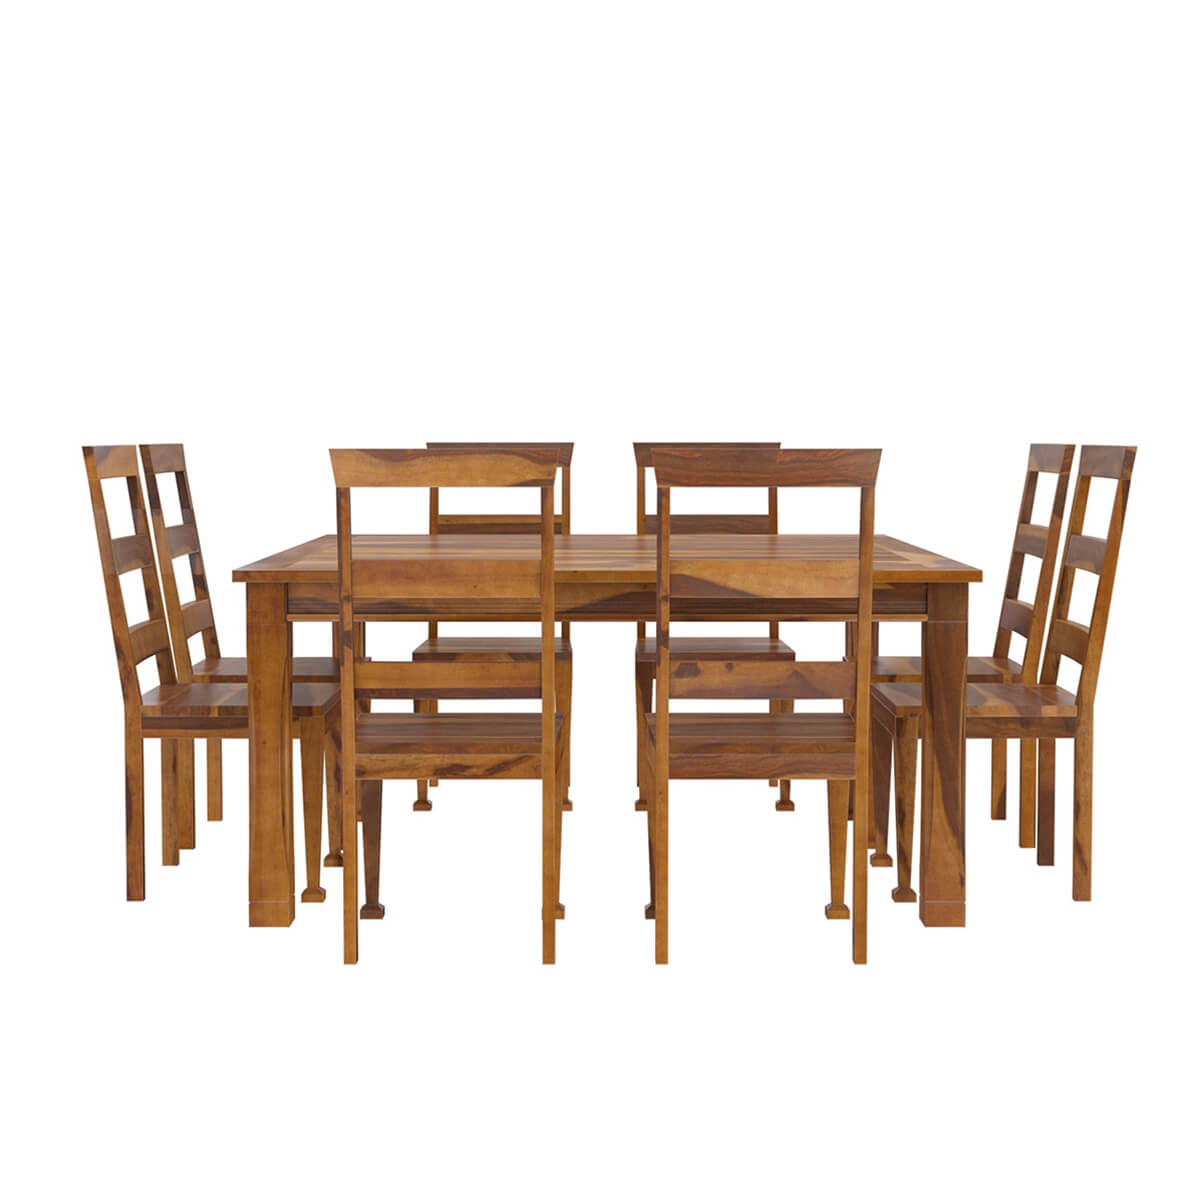 Appalachian Wood Rustic Square Dining Table And Chair